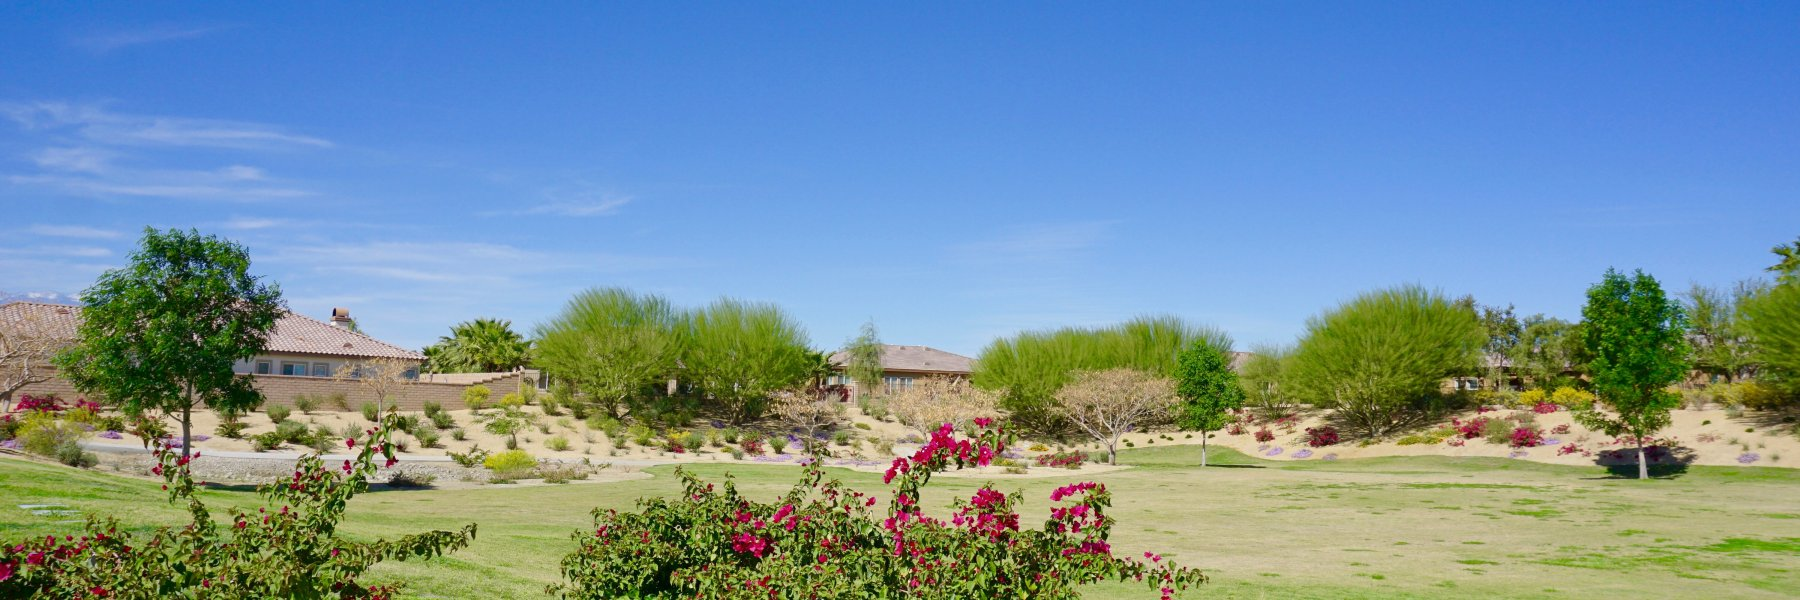 Ponderosa Villas is a community of homes in Indio California